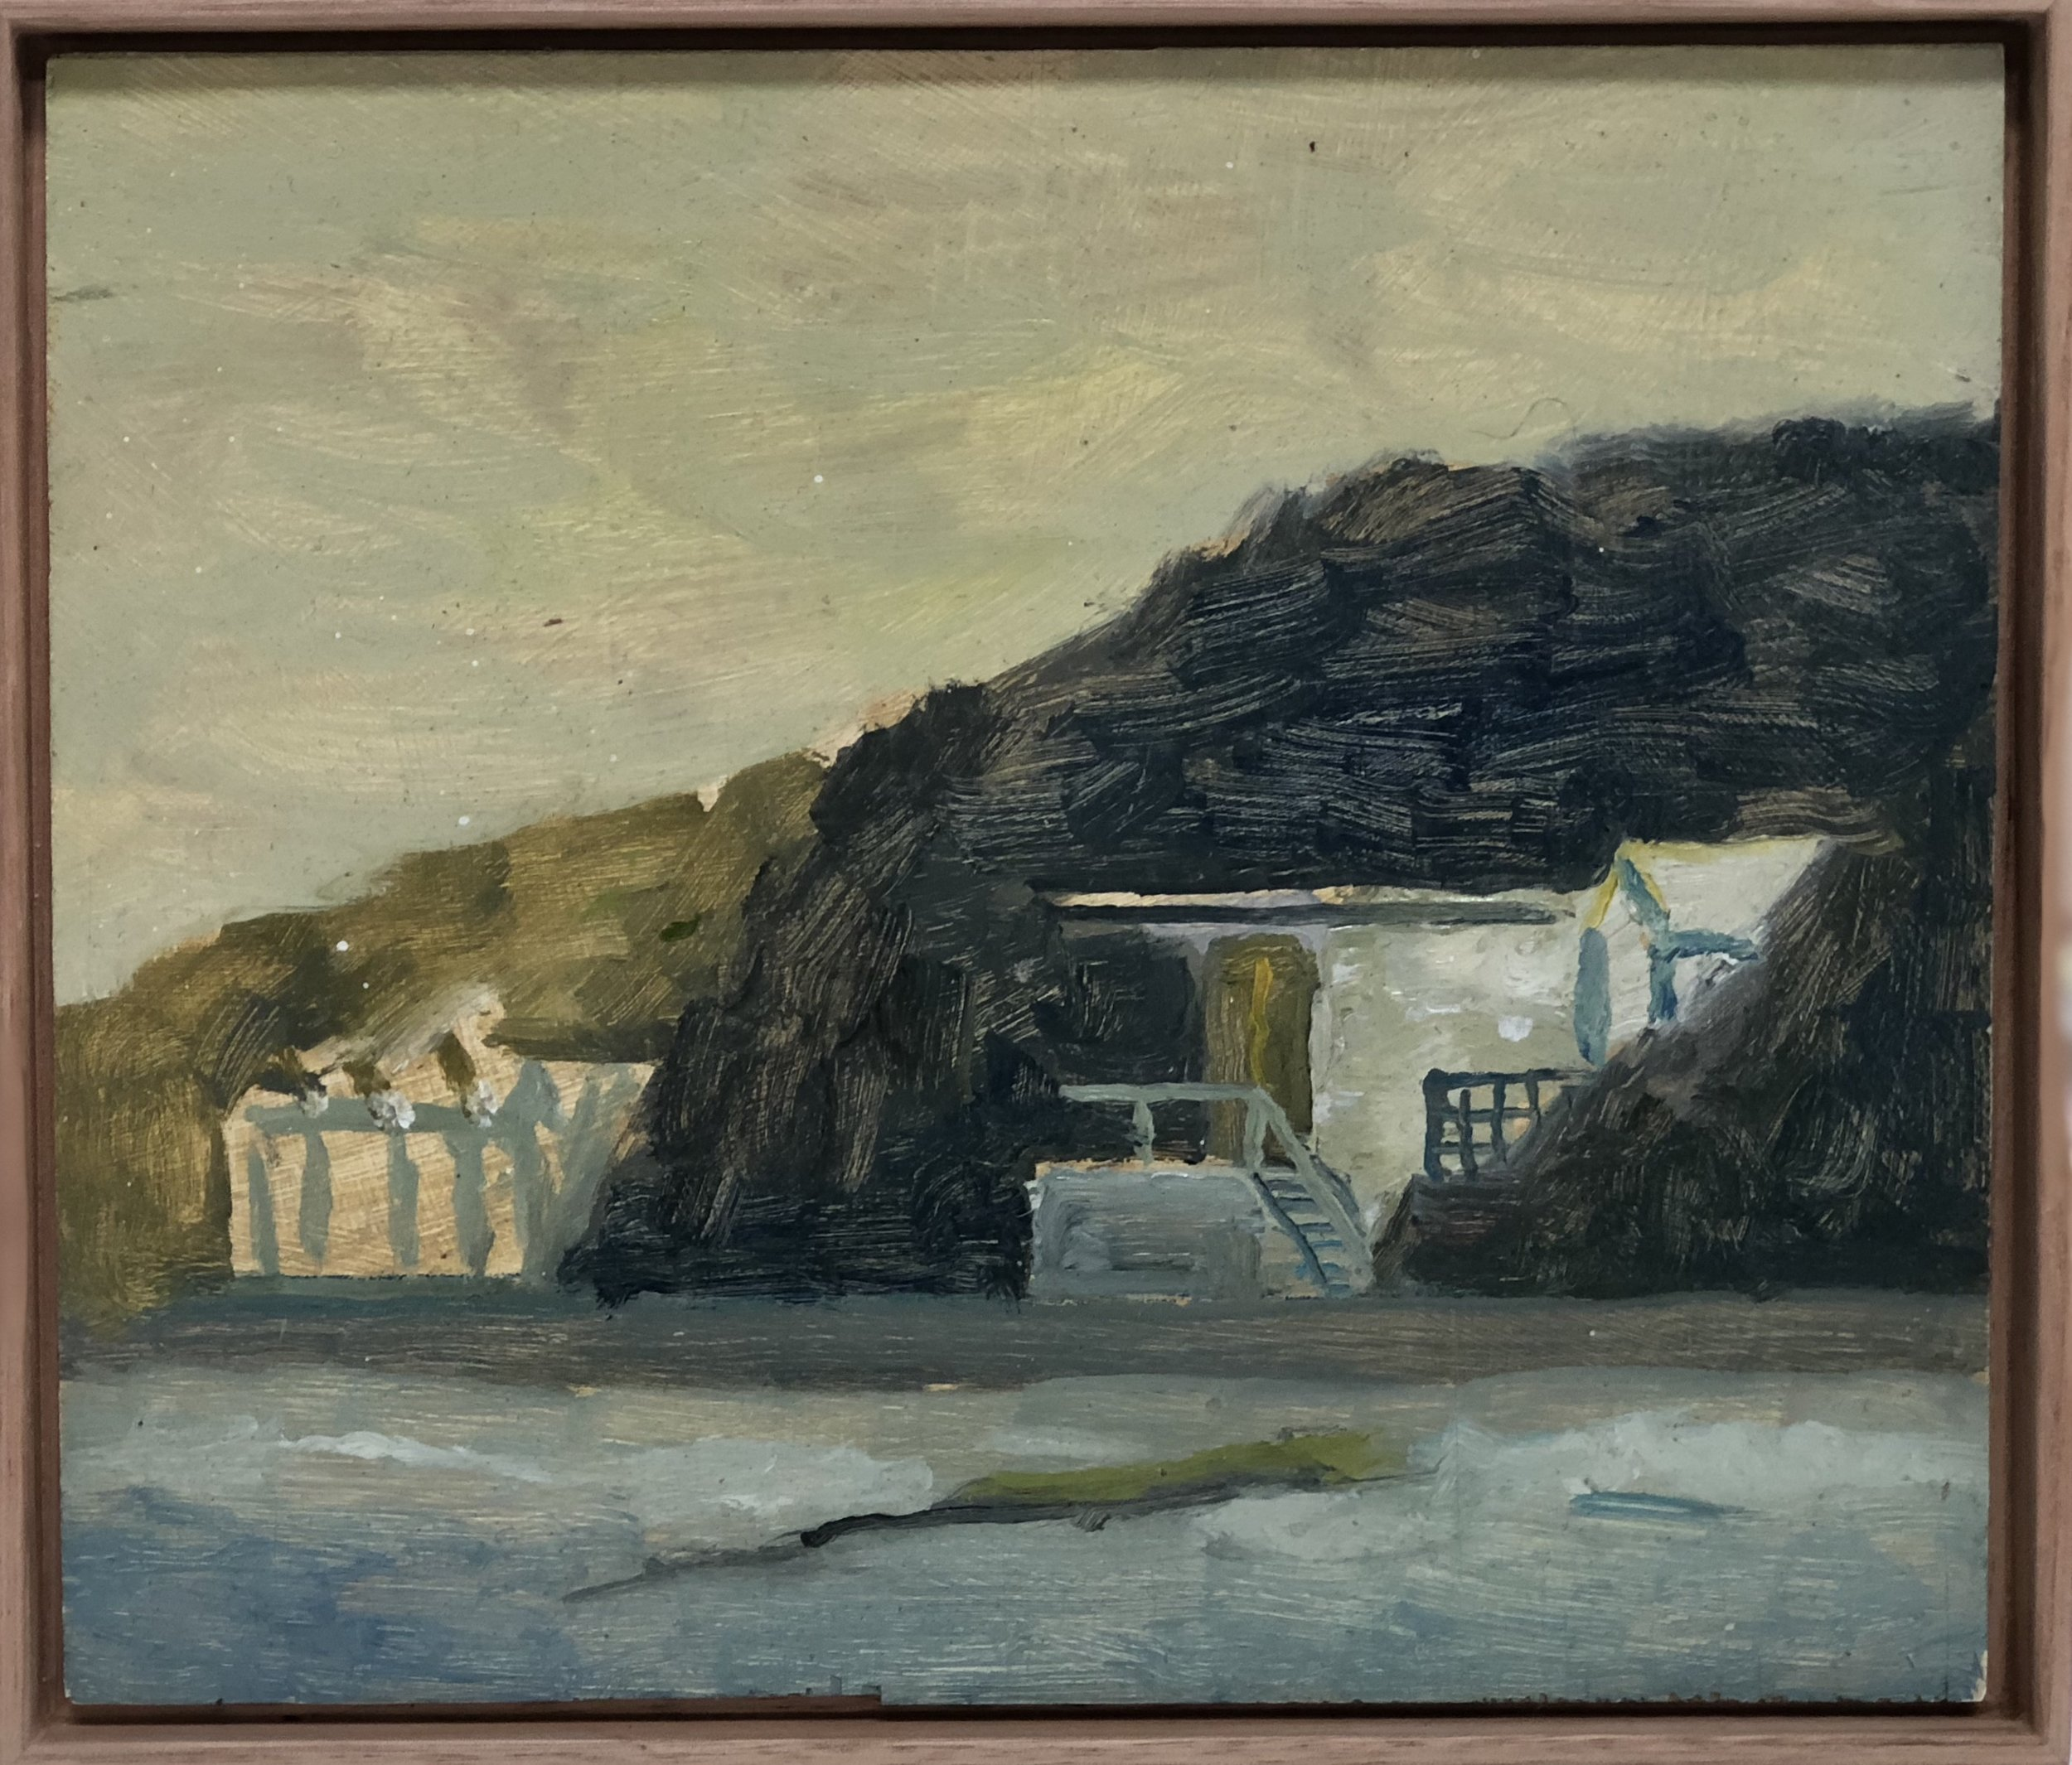 Paul Maher  Portsea boatsheds  oil on board 18.5 x 21.5cm framed SOLD